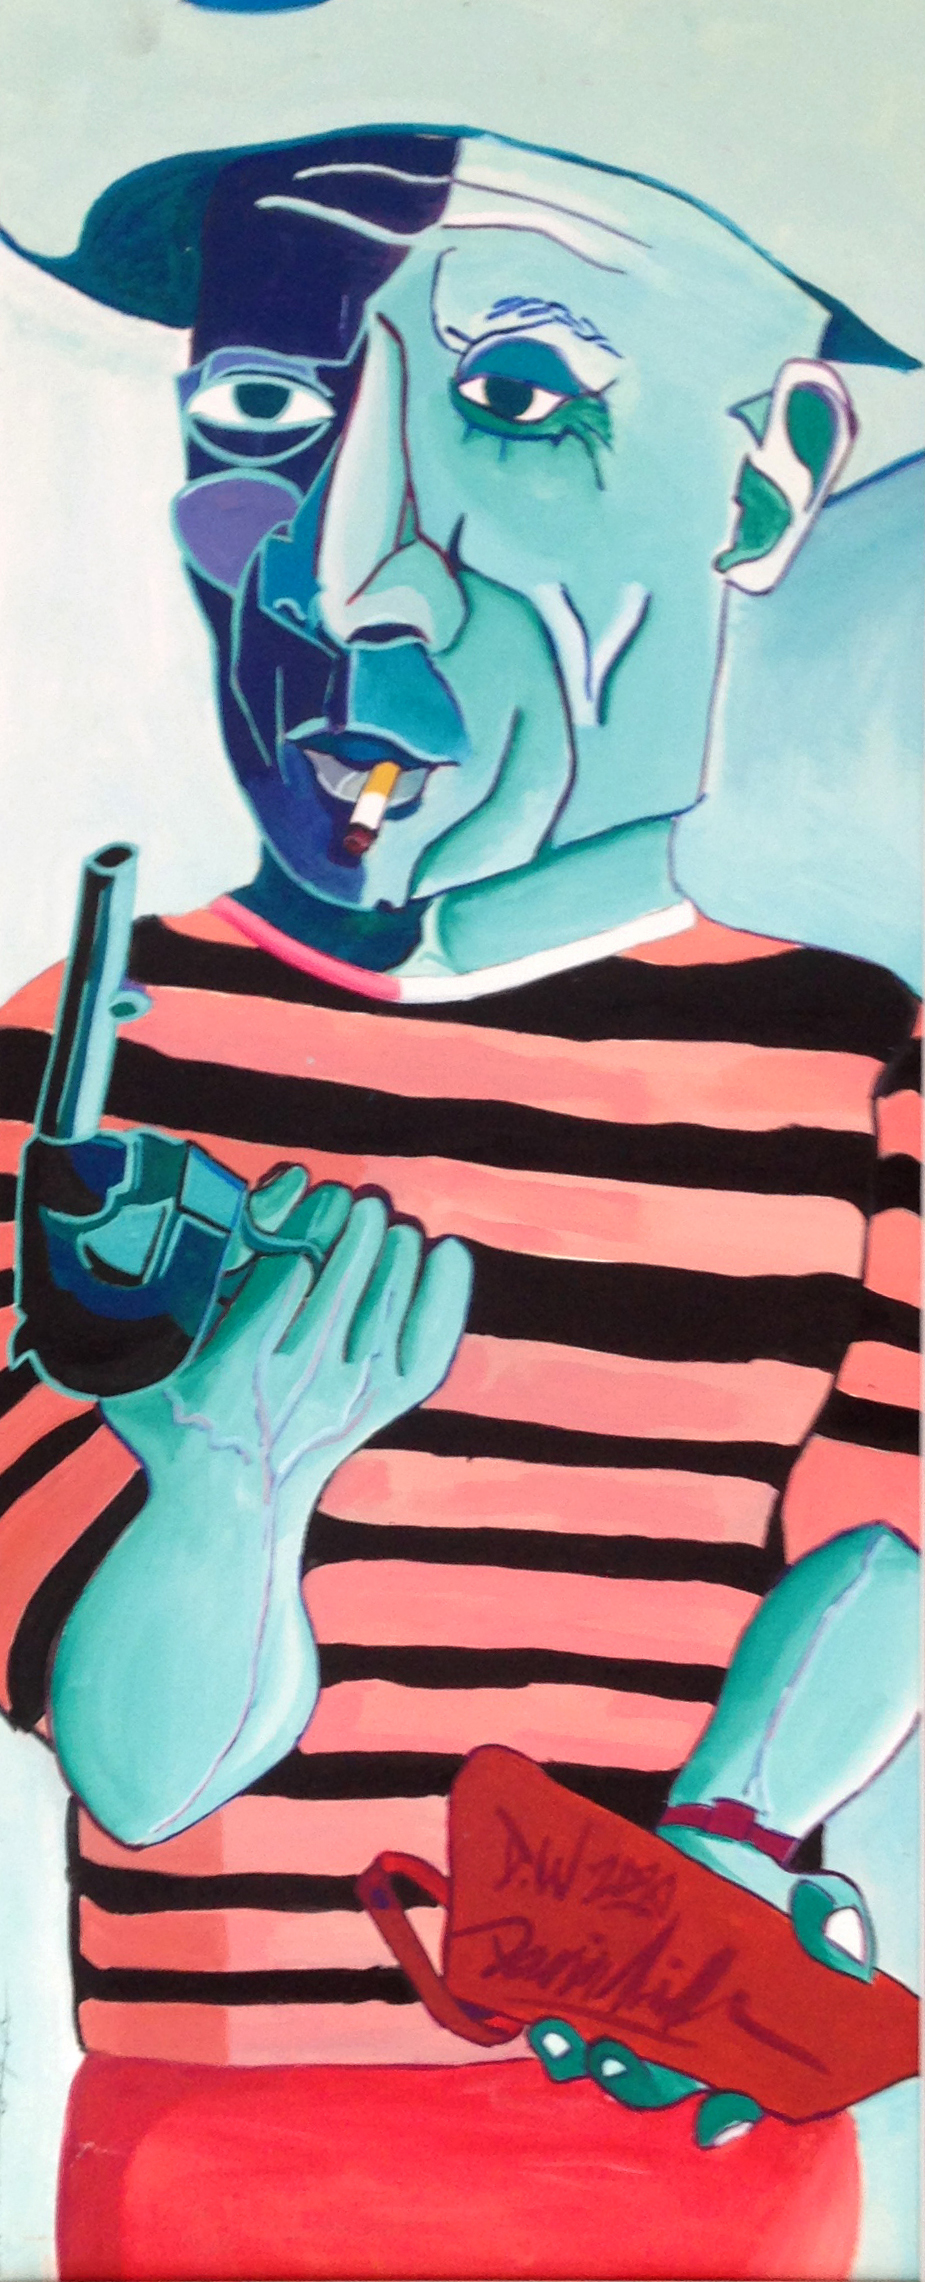 Picasso with a Pistol.jpeg